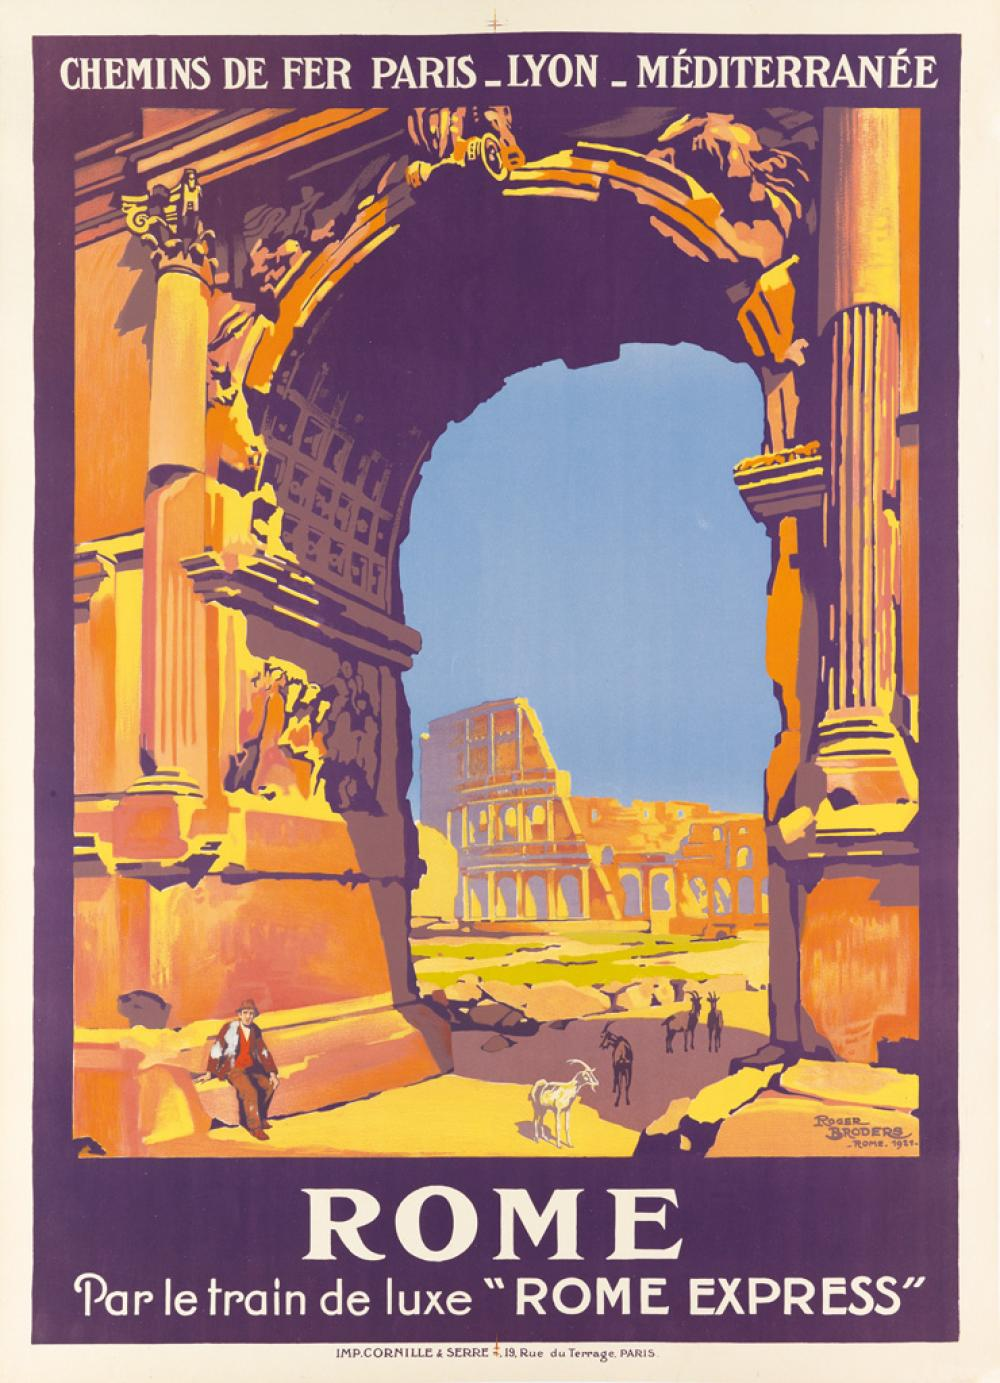 ROGER BRODERS (1883-1953). ROME. 1921. 42x30 inches, 106x78 cm. Cornille & Serre, Paris.